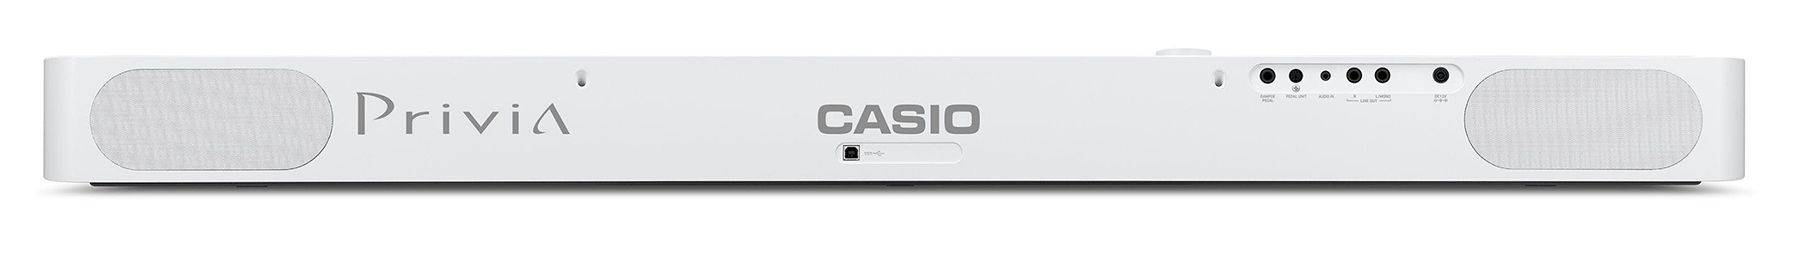 Casio PXS1000WE White 88 Key 18 Tones Smart Scaled Action Digital Piano pxs-1000-we Product Image 7